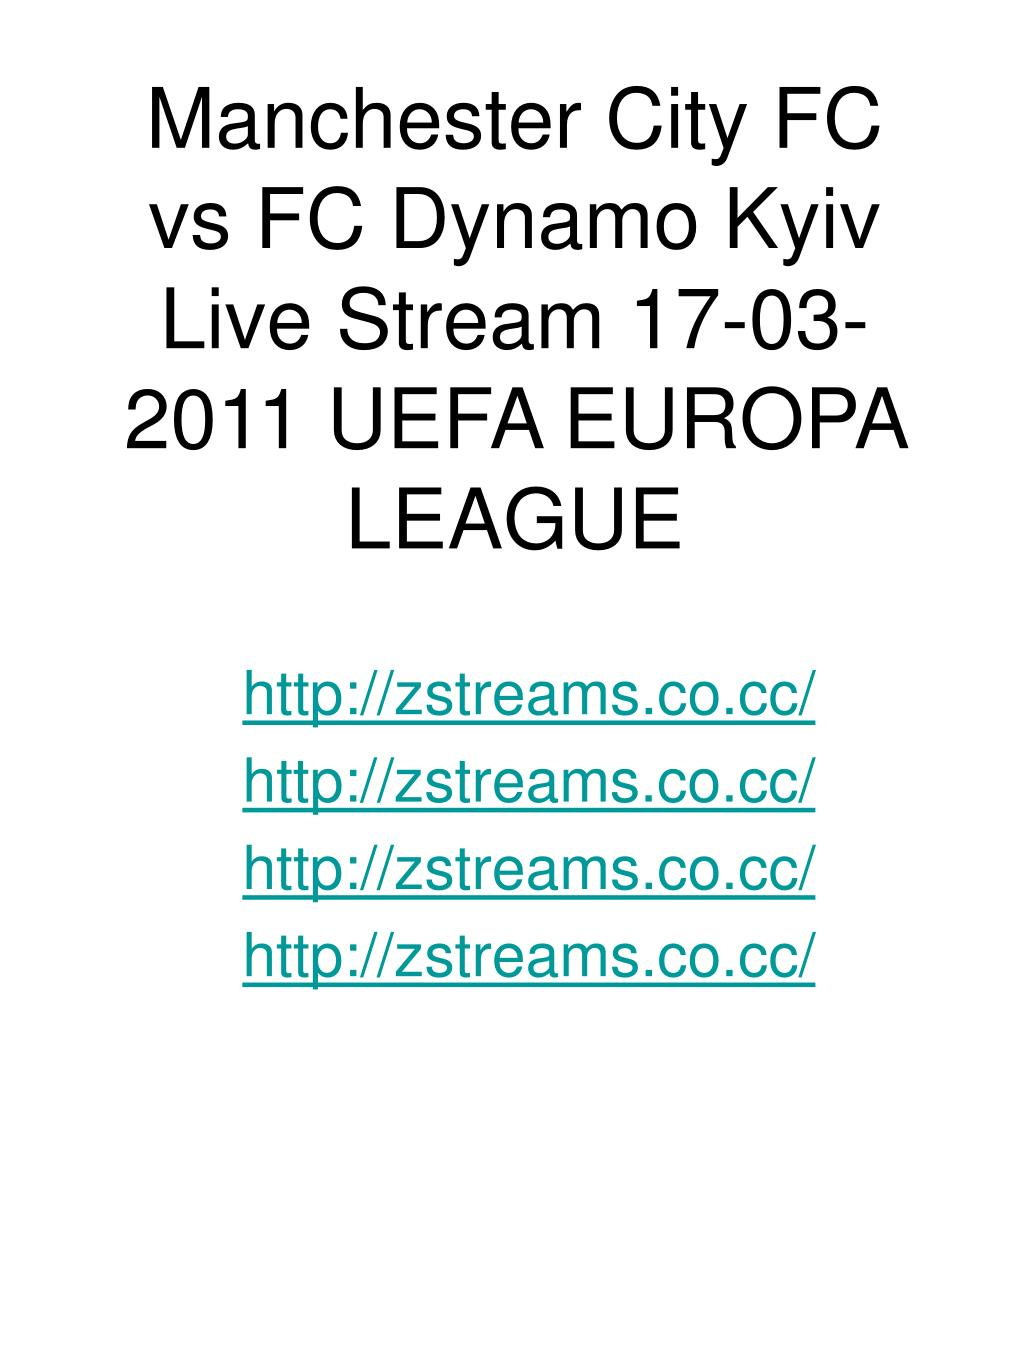 Manchester City FC vs FC Dynamo Kyiv Live Stream 17-03-2011 UEFA EUROPA LEAGUE